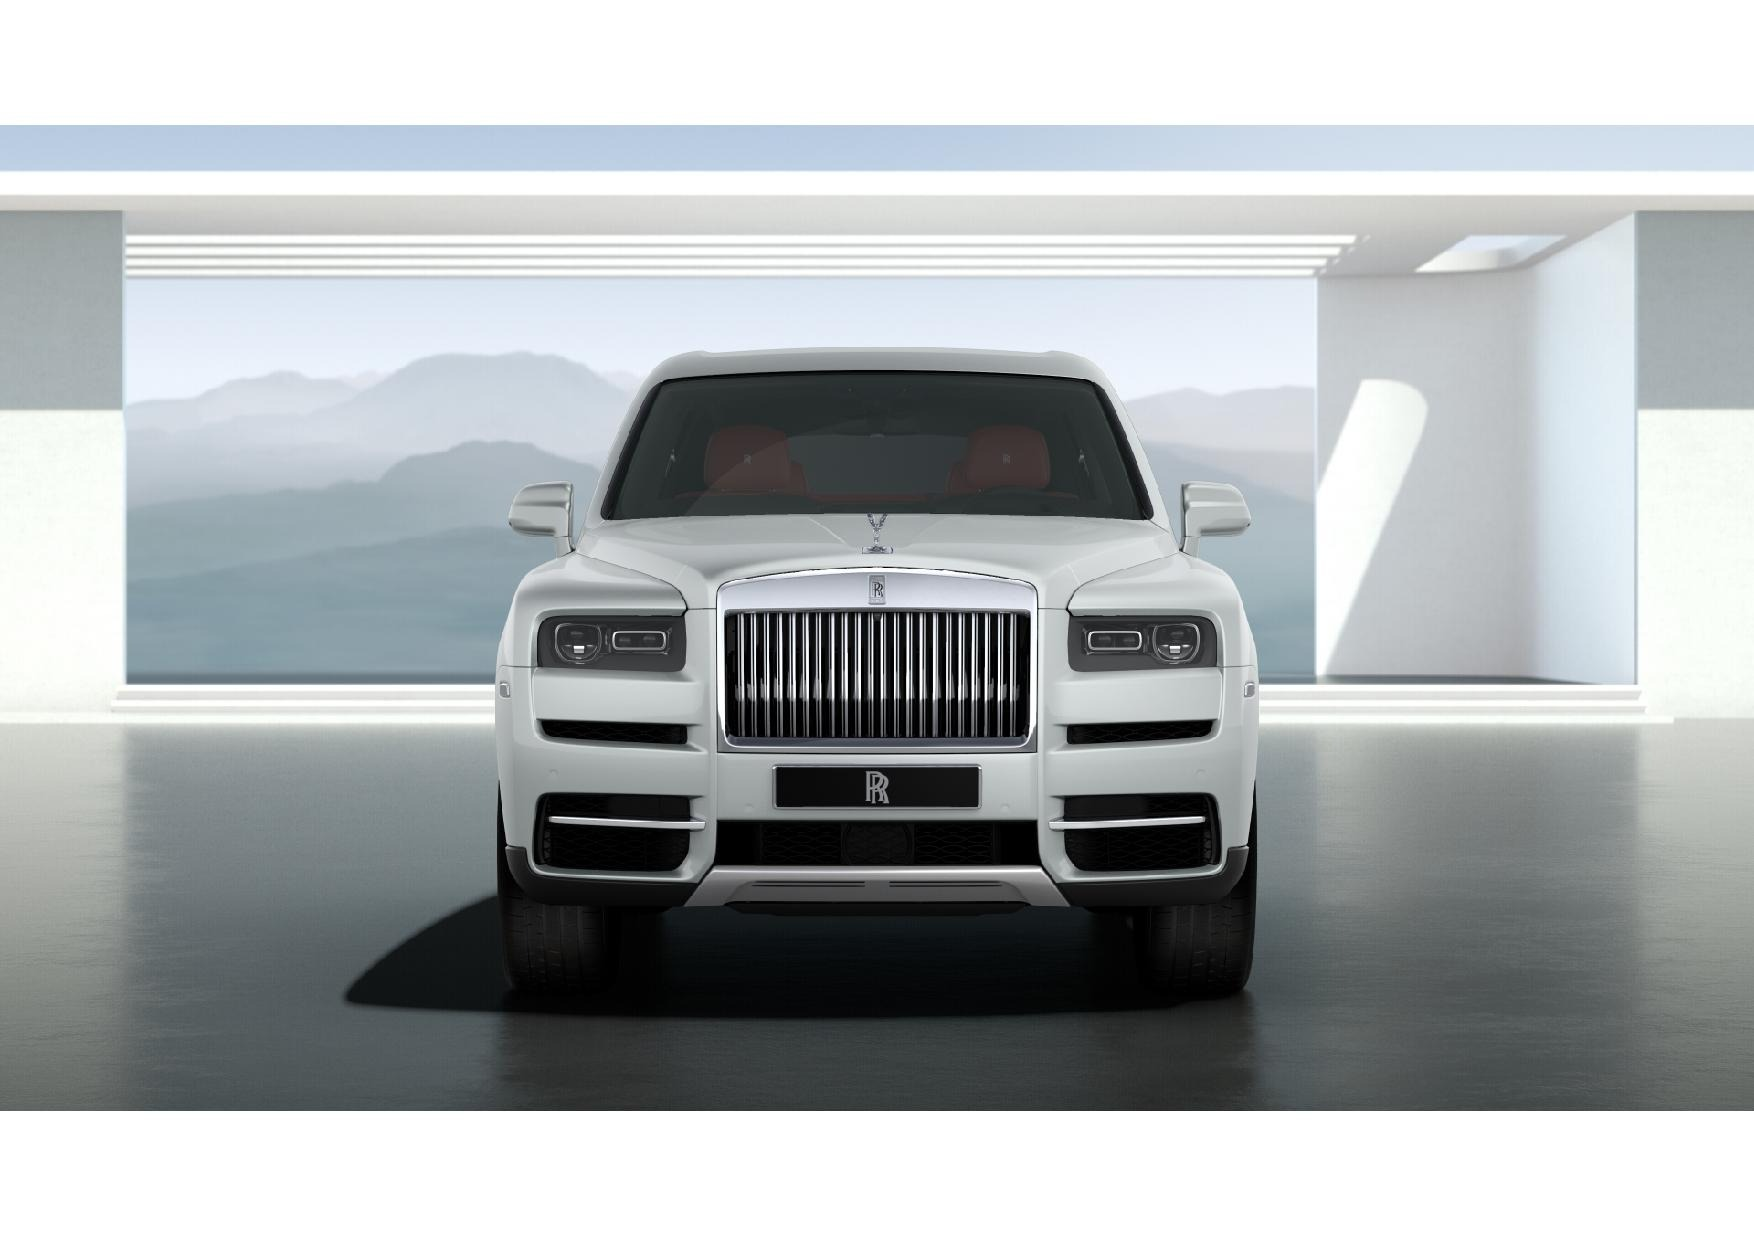 New 2021 Rolls-Royce Cullinan for sale $383,850 at Bentley Greenwich in Greenwich CT 06830 1